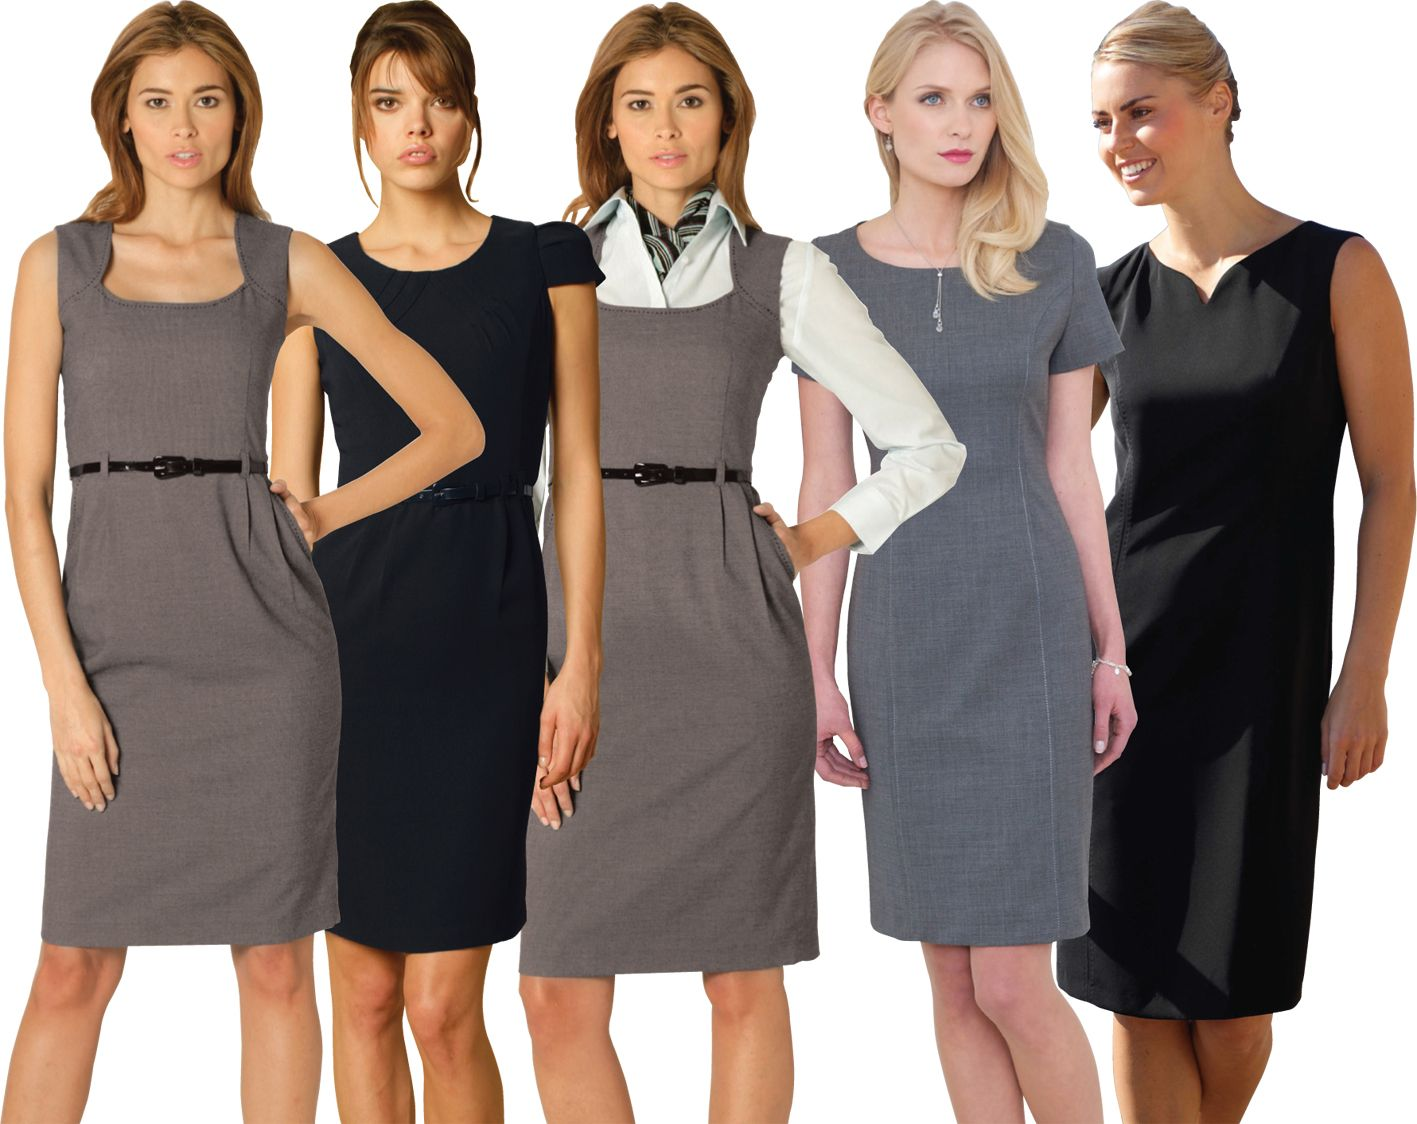 Changing trends in corporate uniforms | Corporate uniforms ...